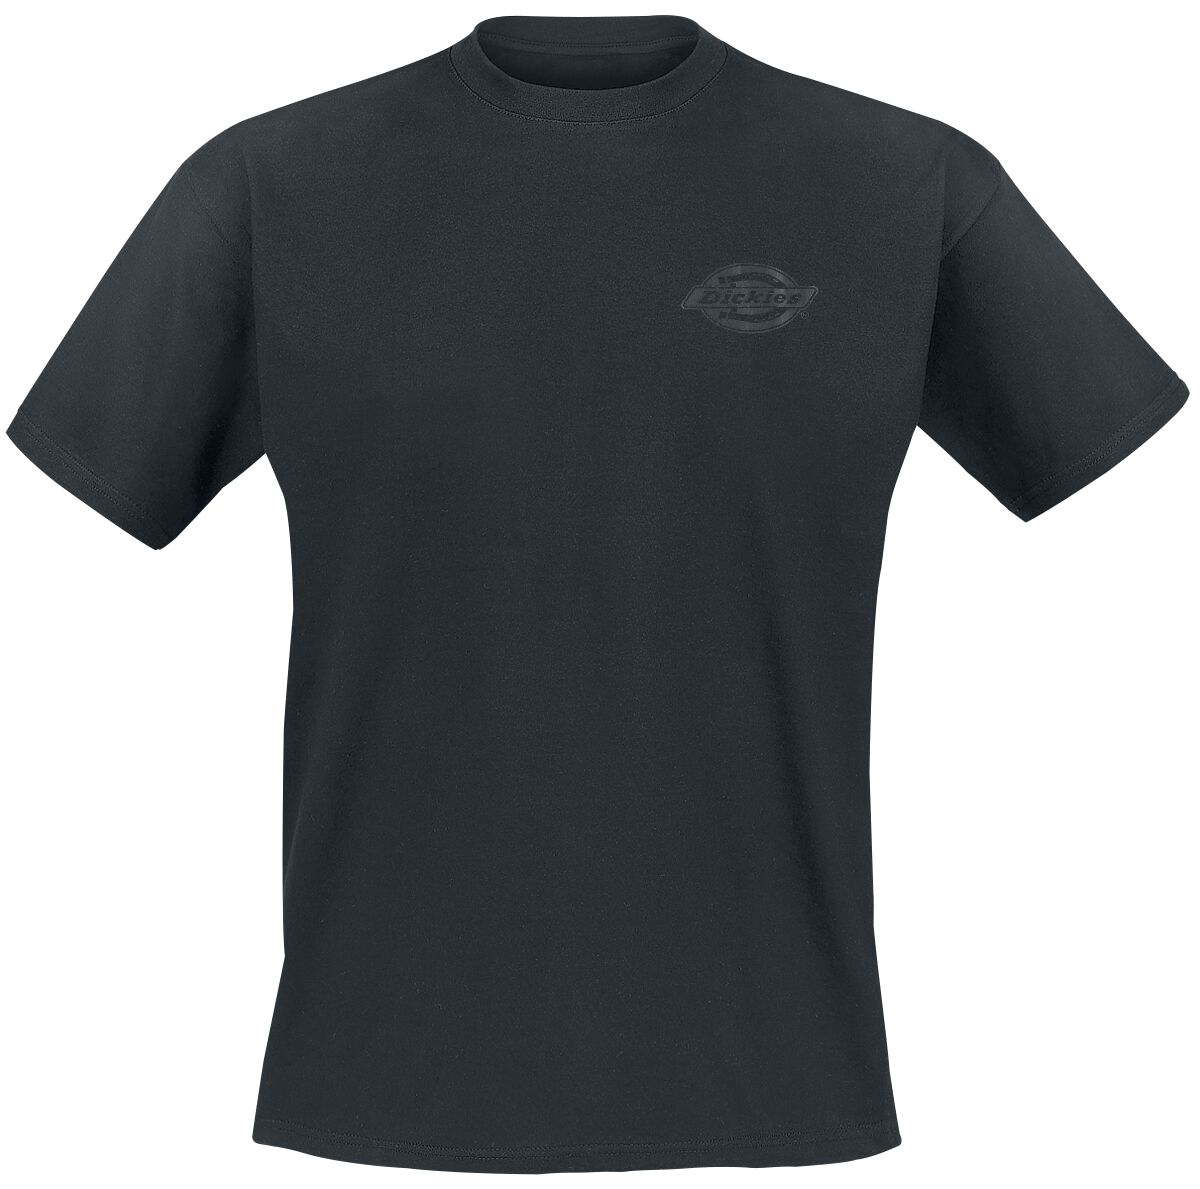 Image of   Dickies Mount Union T-Shirt sort